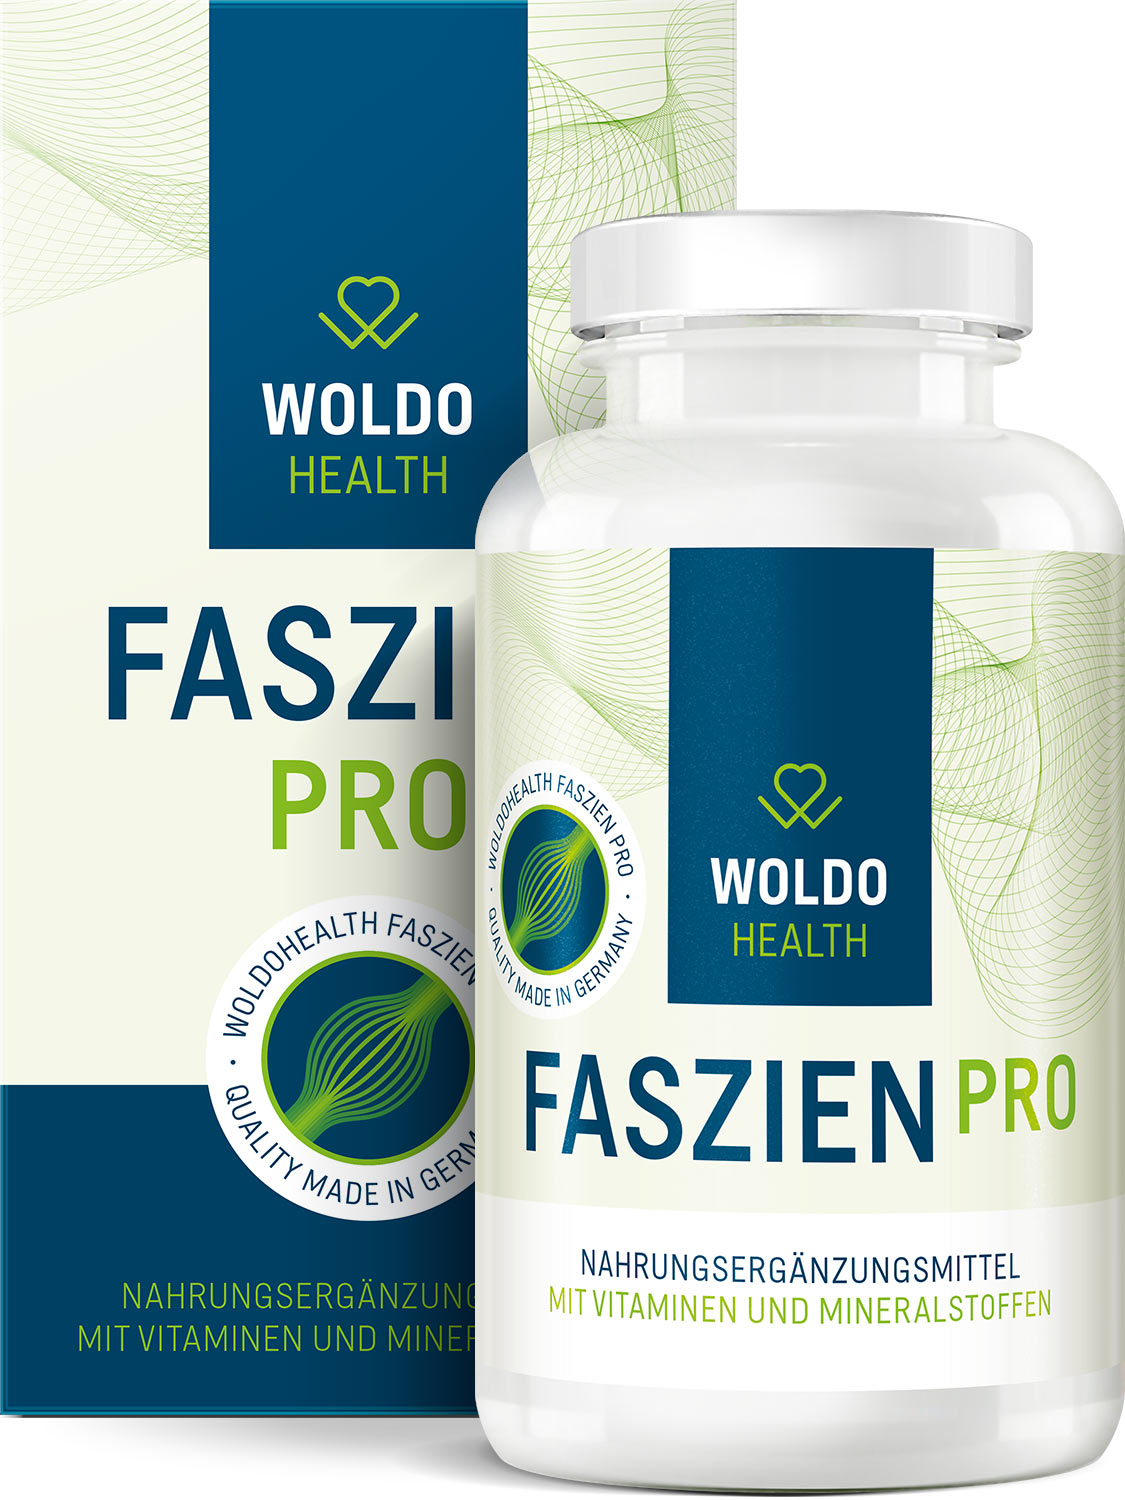 WoldoHealth_190123_Faszien-Pro_Amazon_02_Front_plus_Schachtel